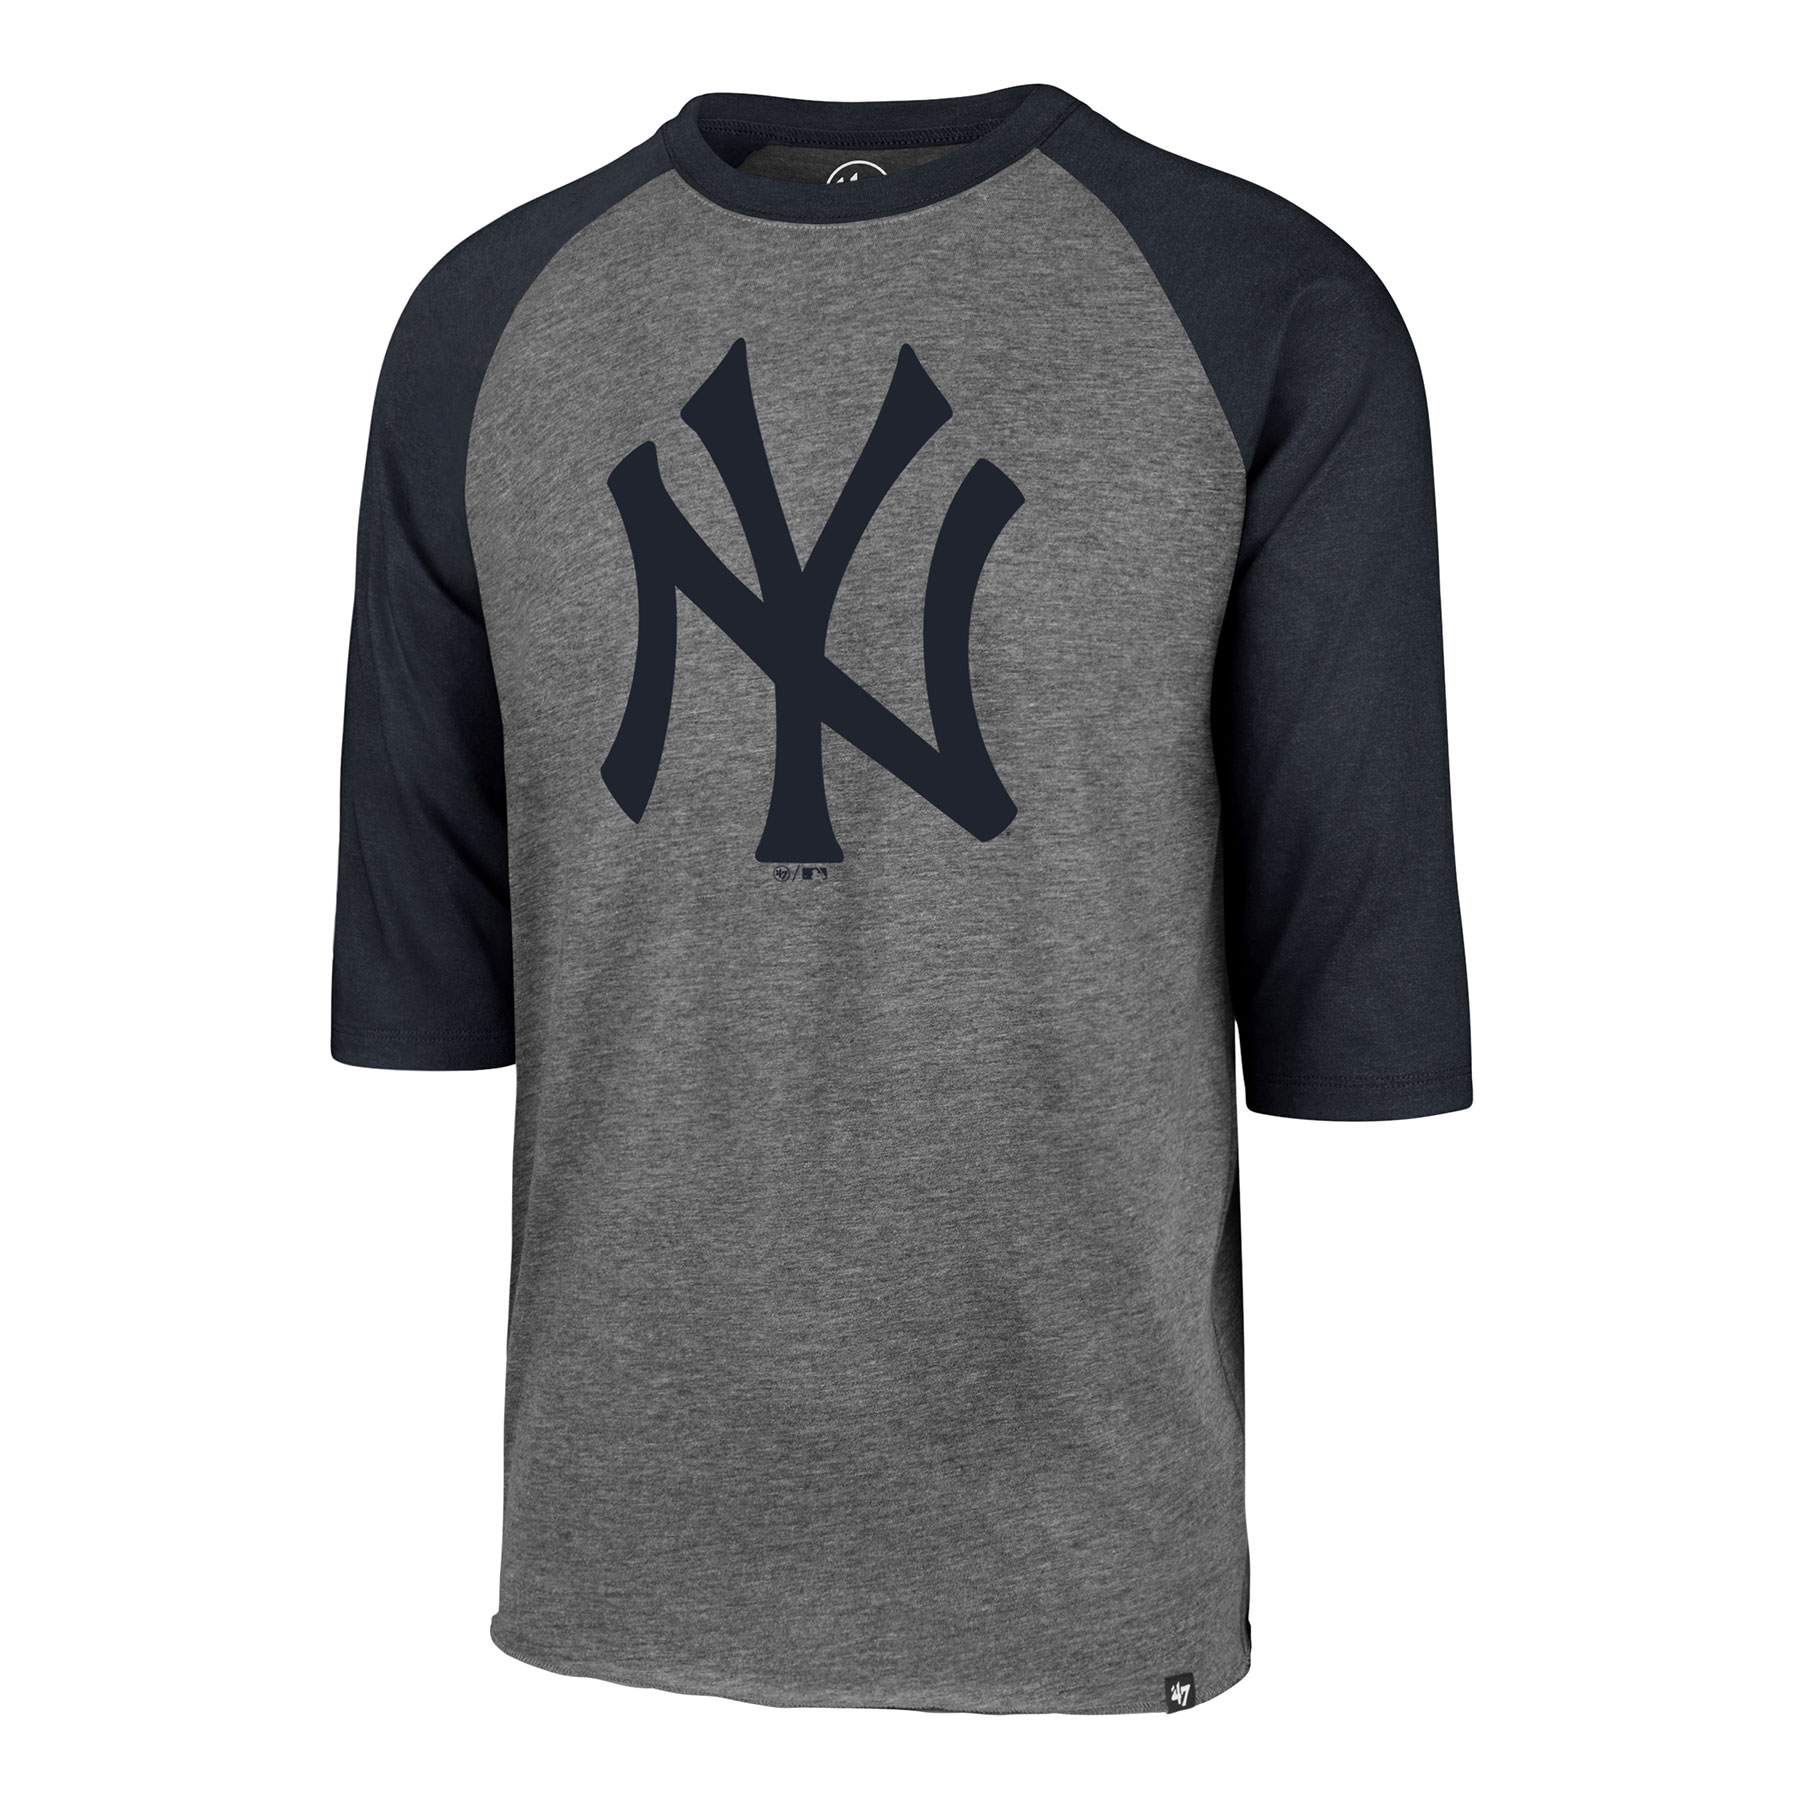 New York Yankees MLB Imprint  47 Club Raglan 3 4 T-Shirt c0fd7032f2b